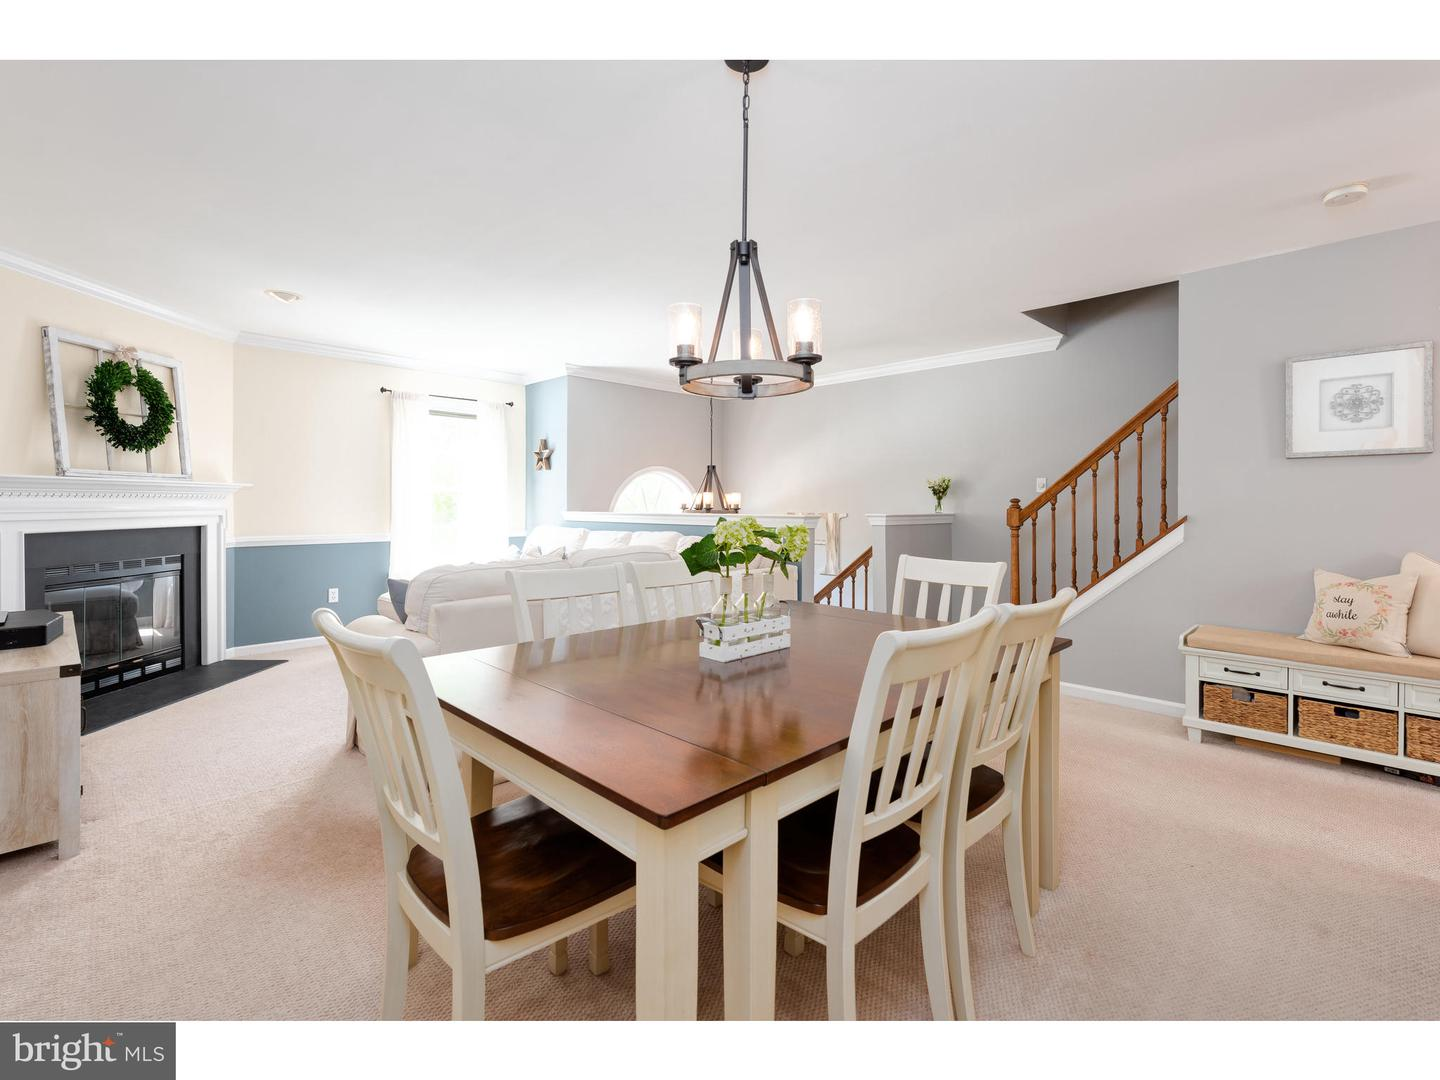 129 Whispering Oaks Drive UNIT 2106 West Chester , PA 19382